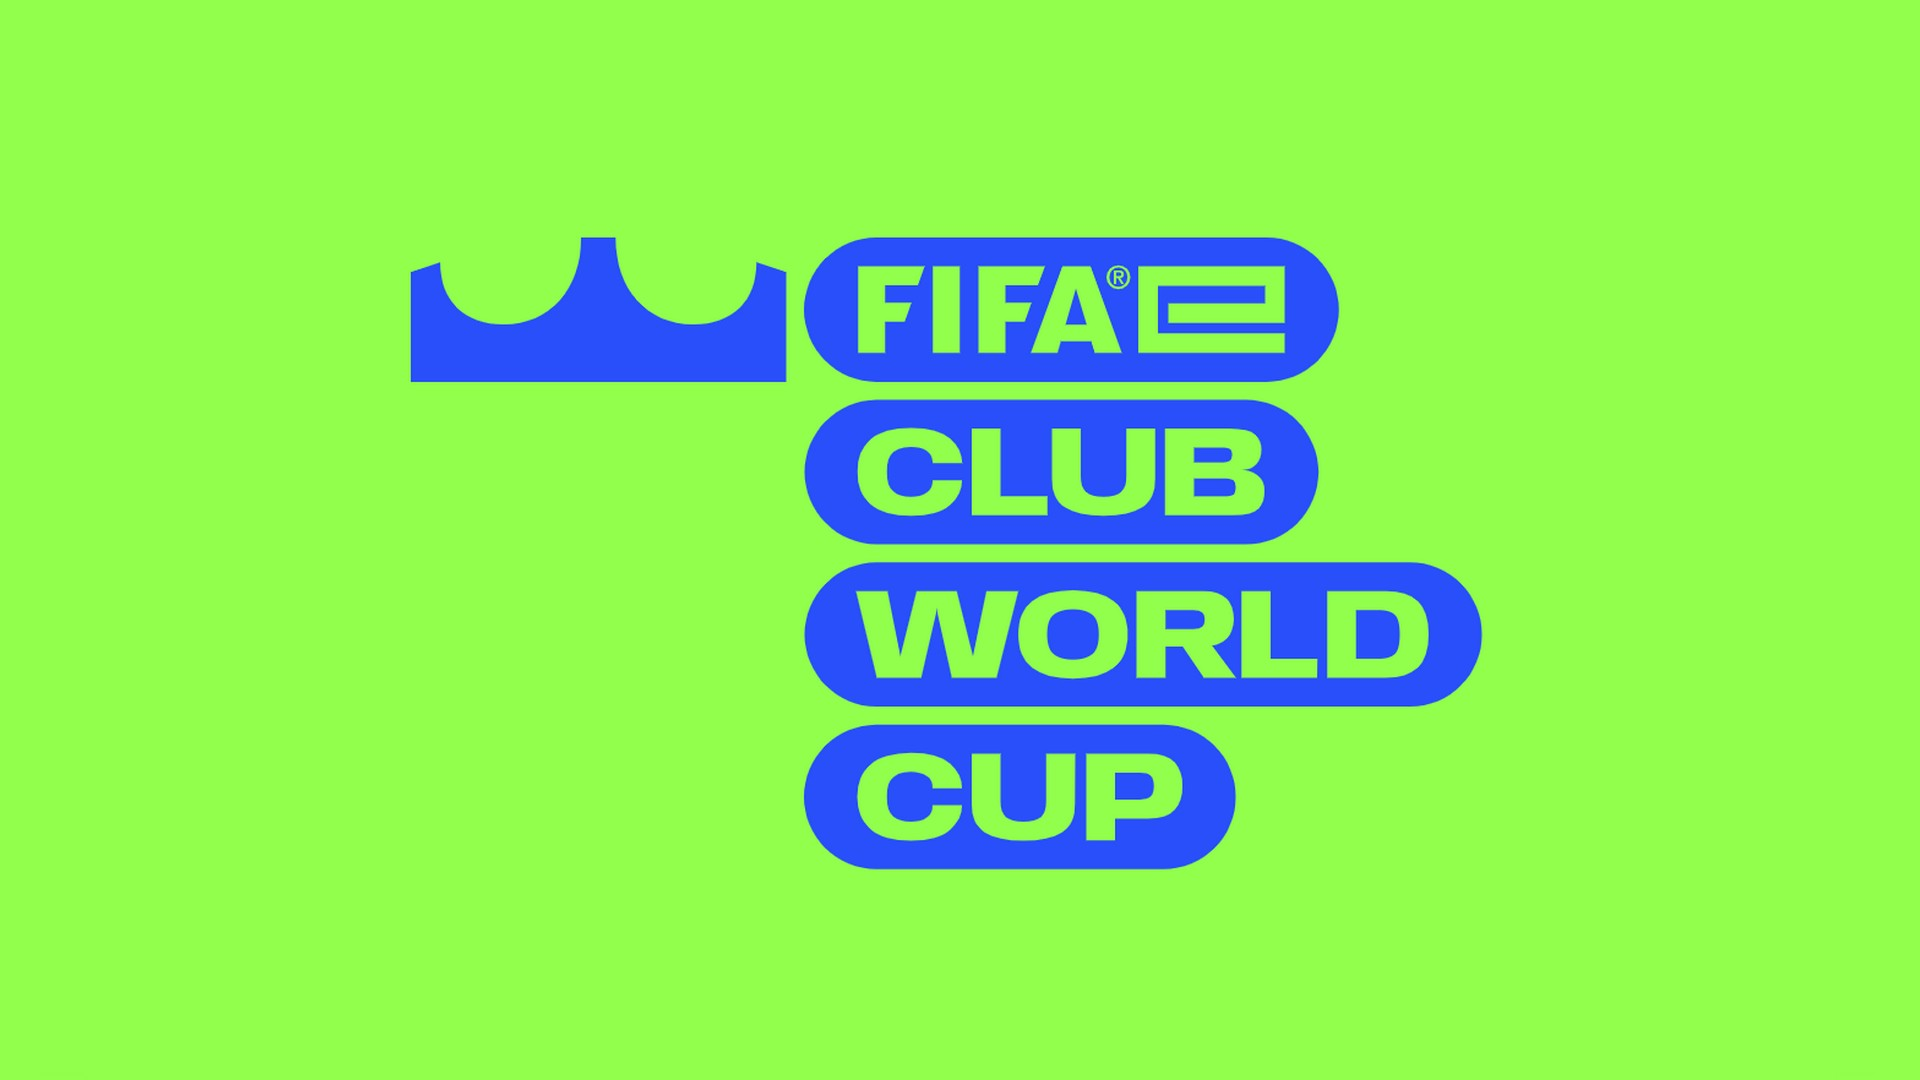 Football – Fifae Club World Cup (1) Logo